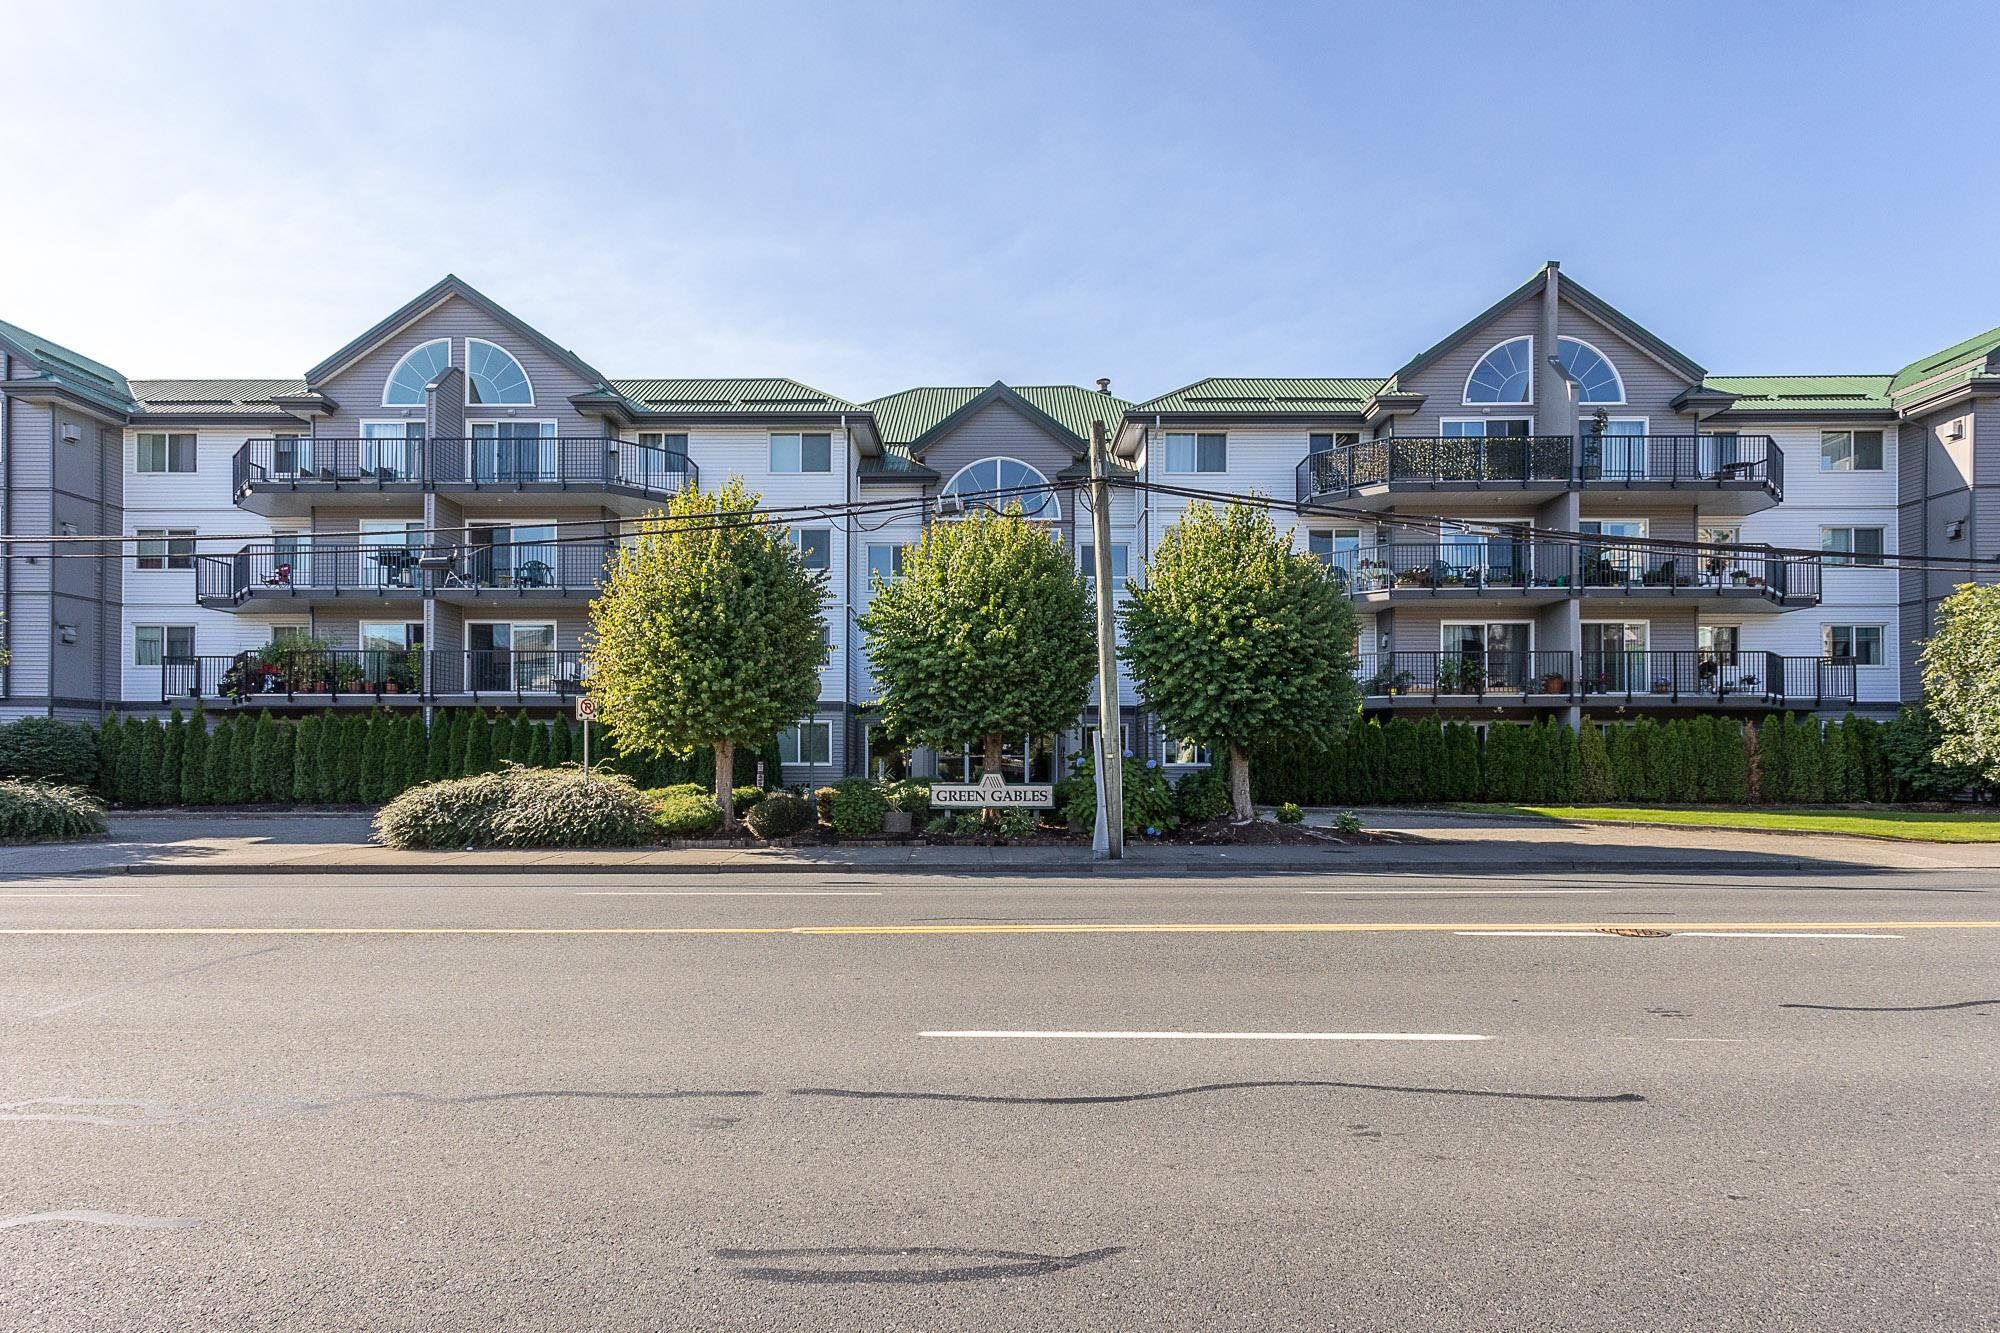 """Main Photo: 411 32044 OLD YALE Road in Abbotsford: Abbotsford West Condo for sale in """"Green Gables"""" : MLS®# R2611024"""